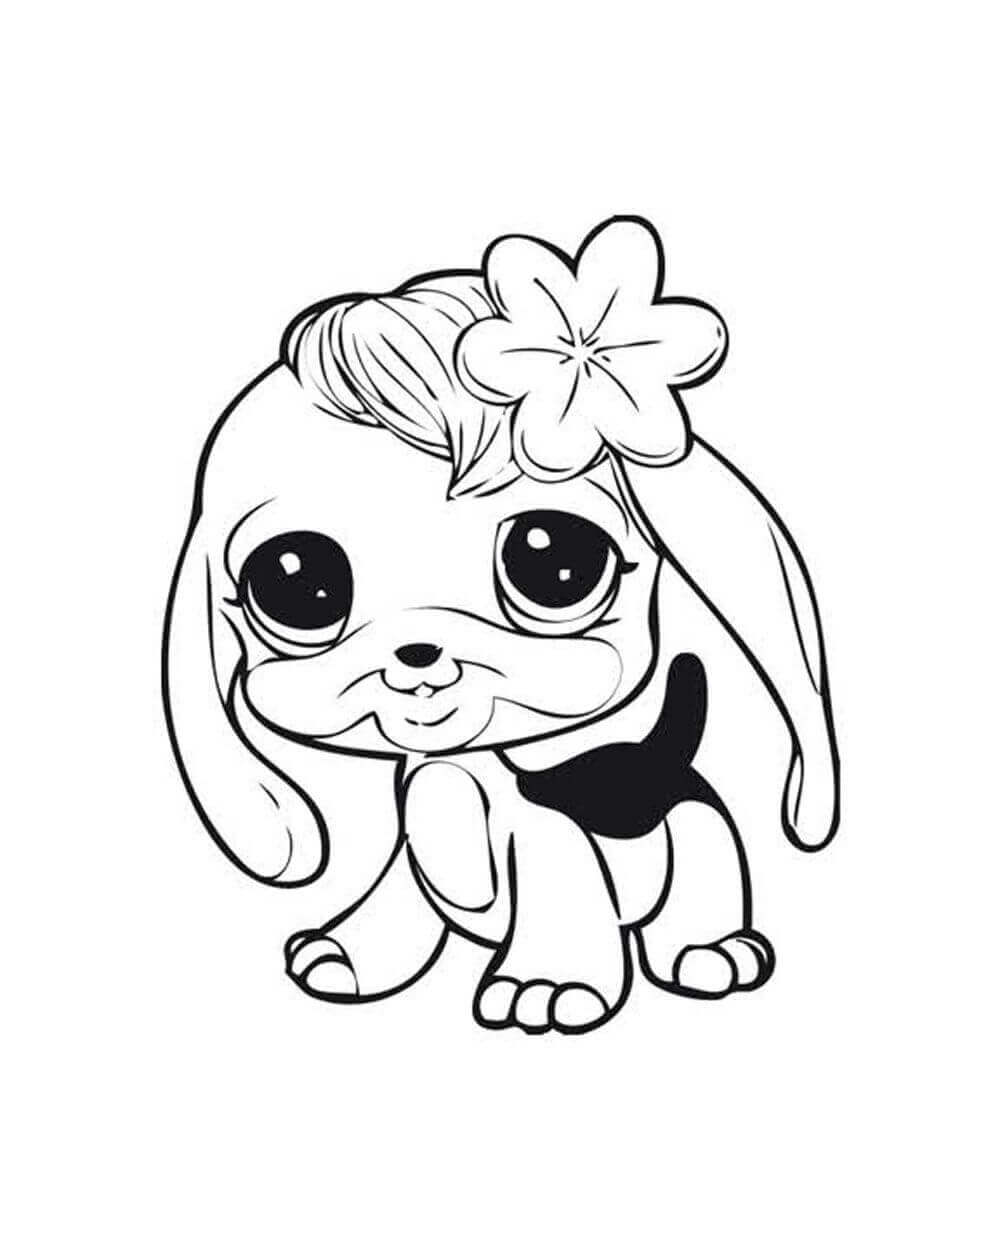 Littlest Pet Shop Coloring Pages For Preschoolers